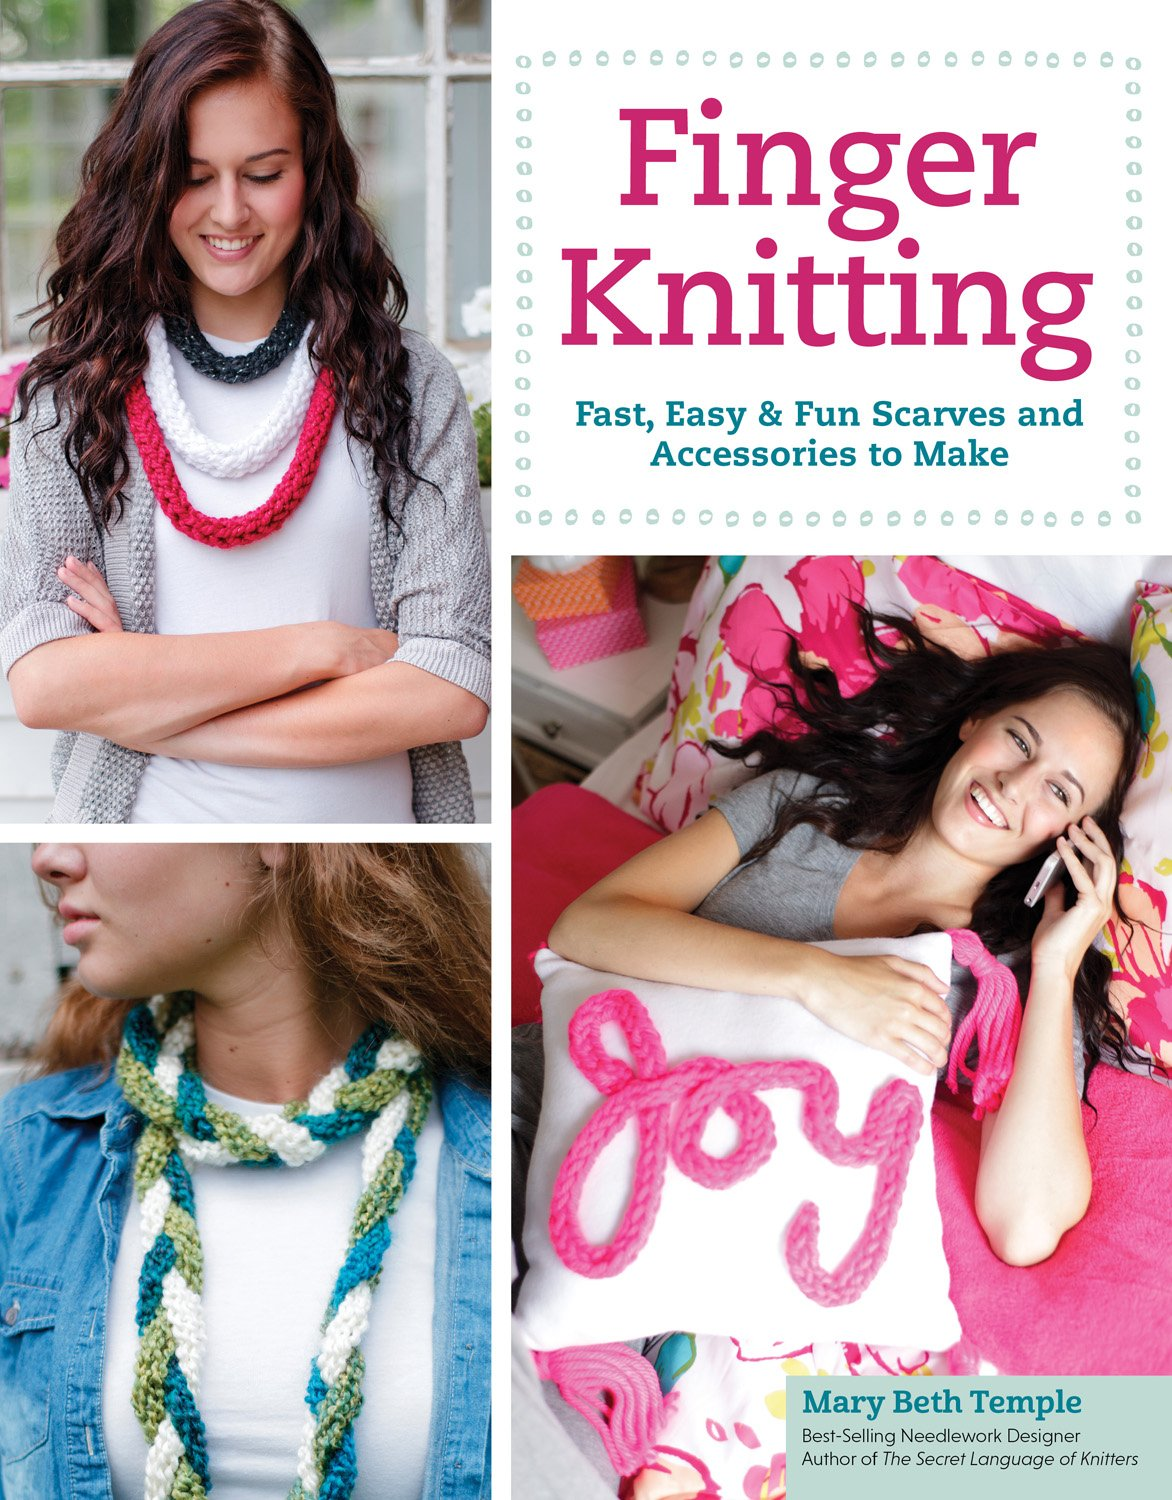 Finger Knitting Fast Easy Fun Scarves And Accessories To Make Design Originals Temple Mary Beth 9781574219463 Amazon Com Books,Brandy Alexander Cocktail